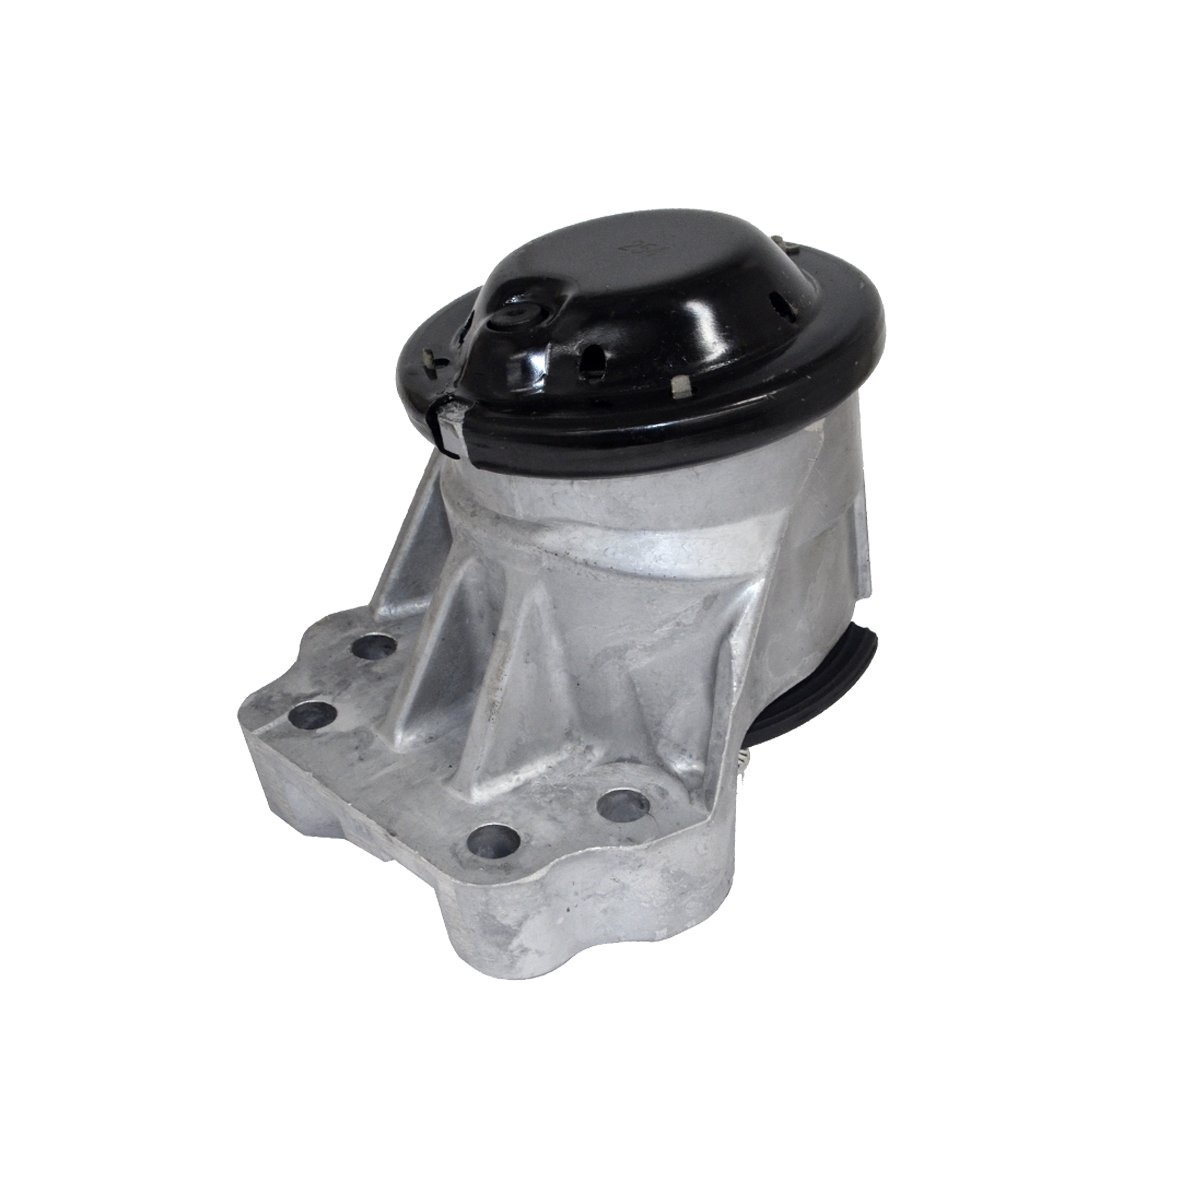 Front 50810-S2A-003 MTC 1010322 MTC 1010322//50810-S2A-003 Engine Mount